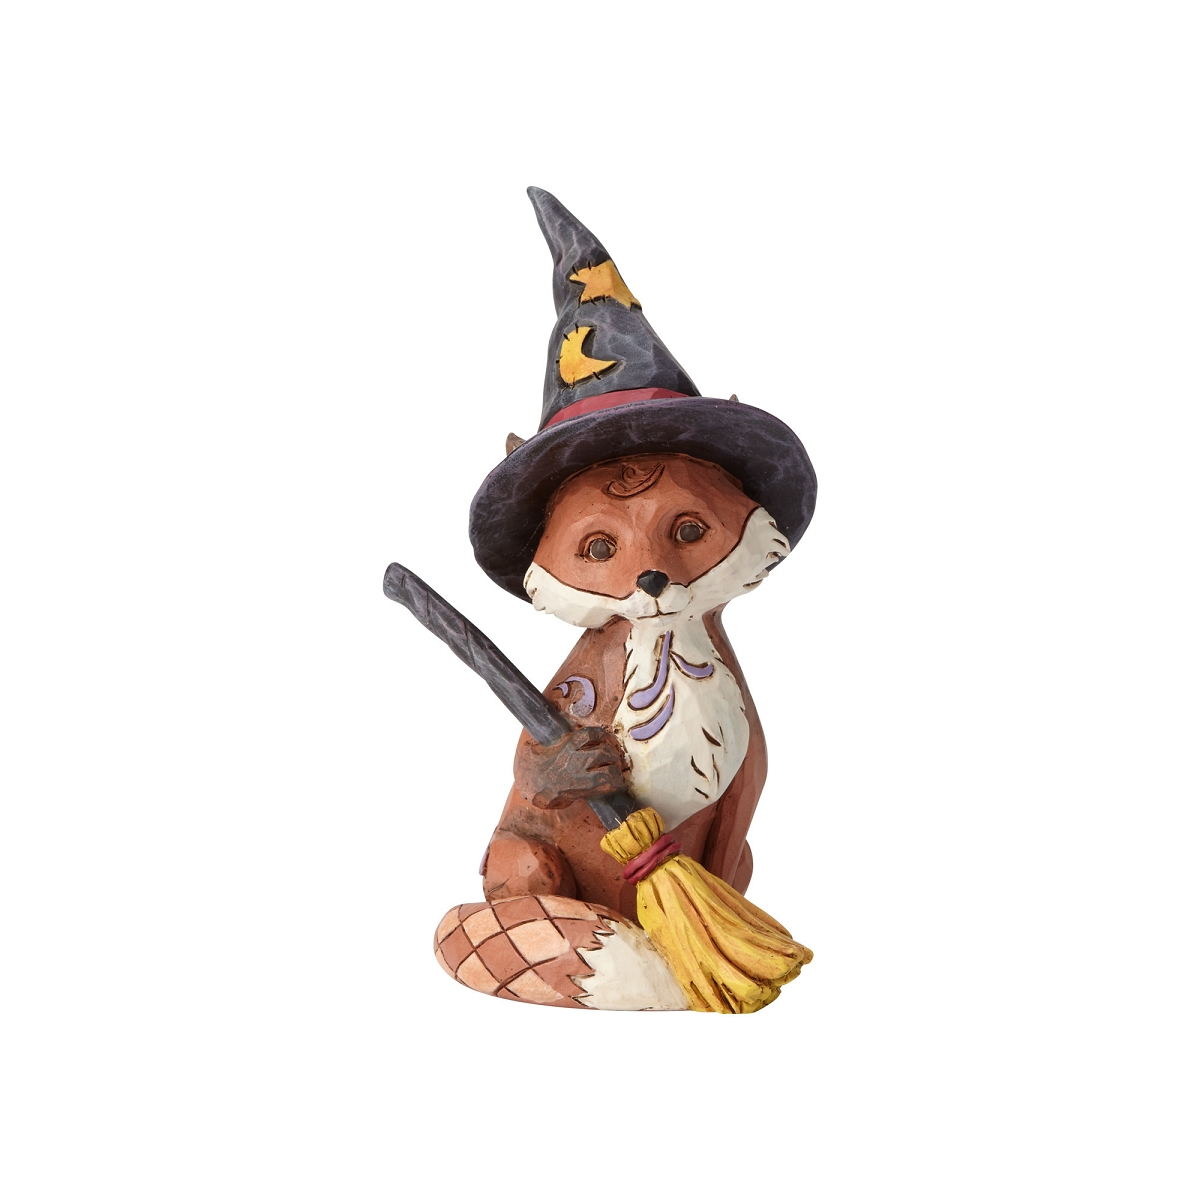 2020 Fox in Witch's Hat Figurine - Jim Shore Heartwood Creek